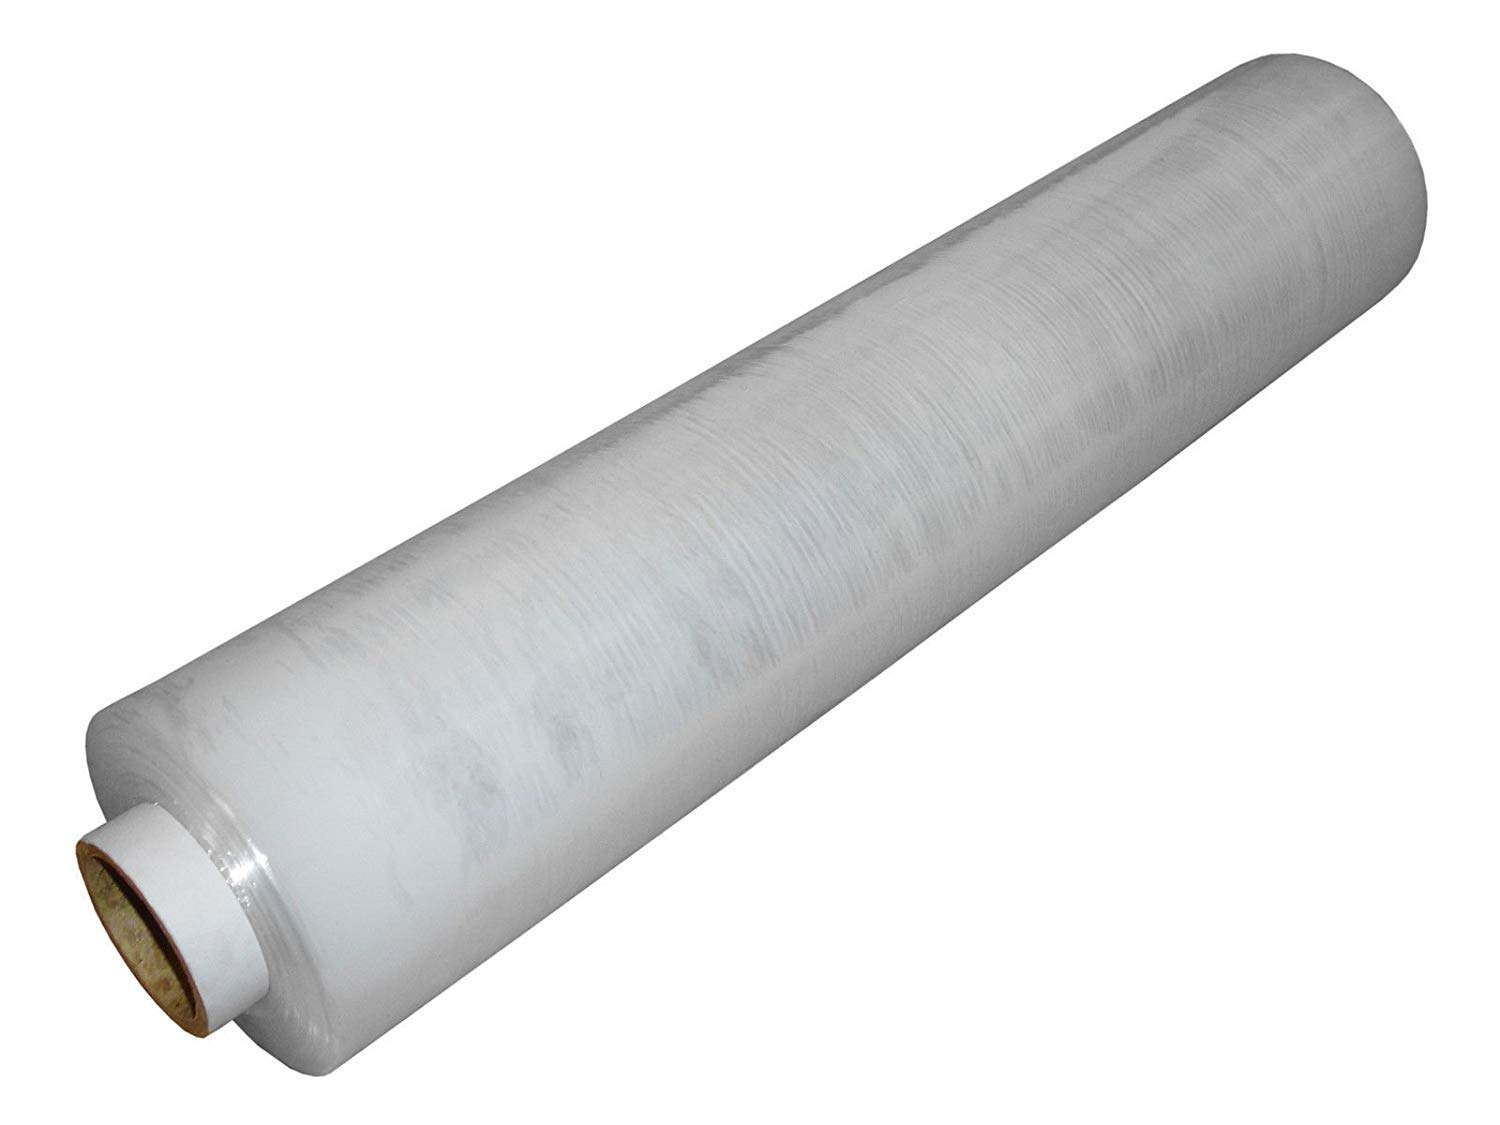 Pack of 1 PKGE Clear Heavy Duty Strong Pallet Shrink Wrap Packaging Cling Film Roll 400mm x 250m